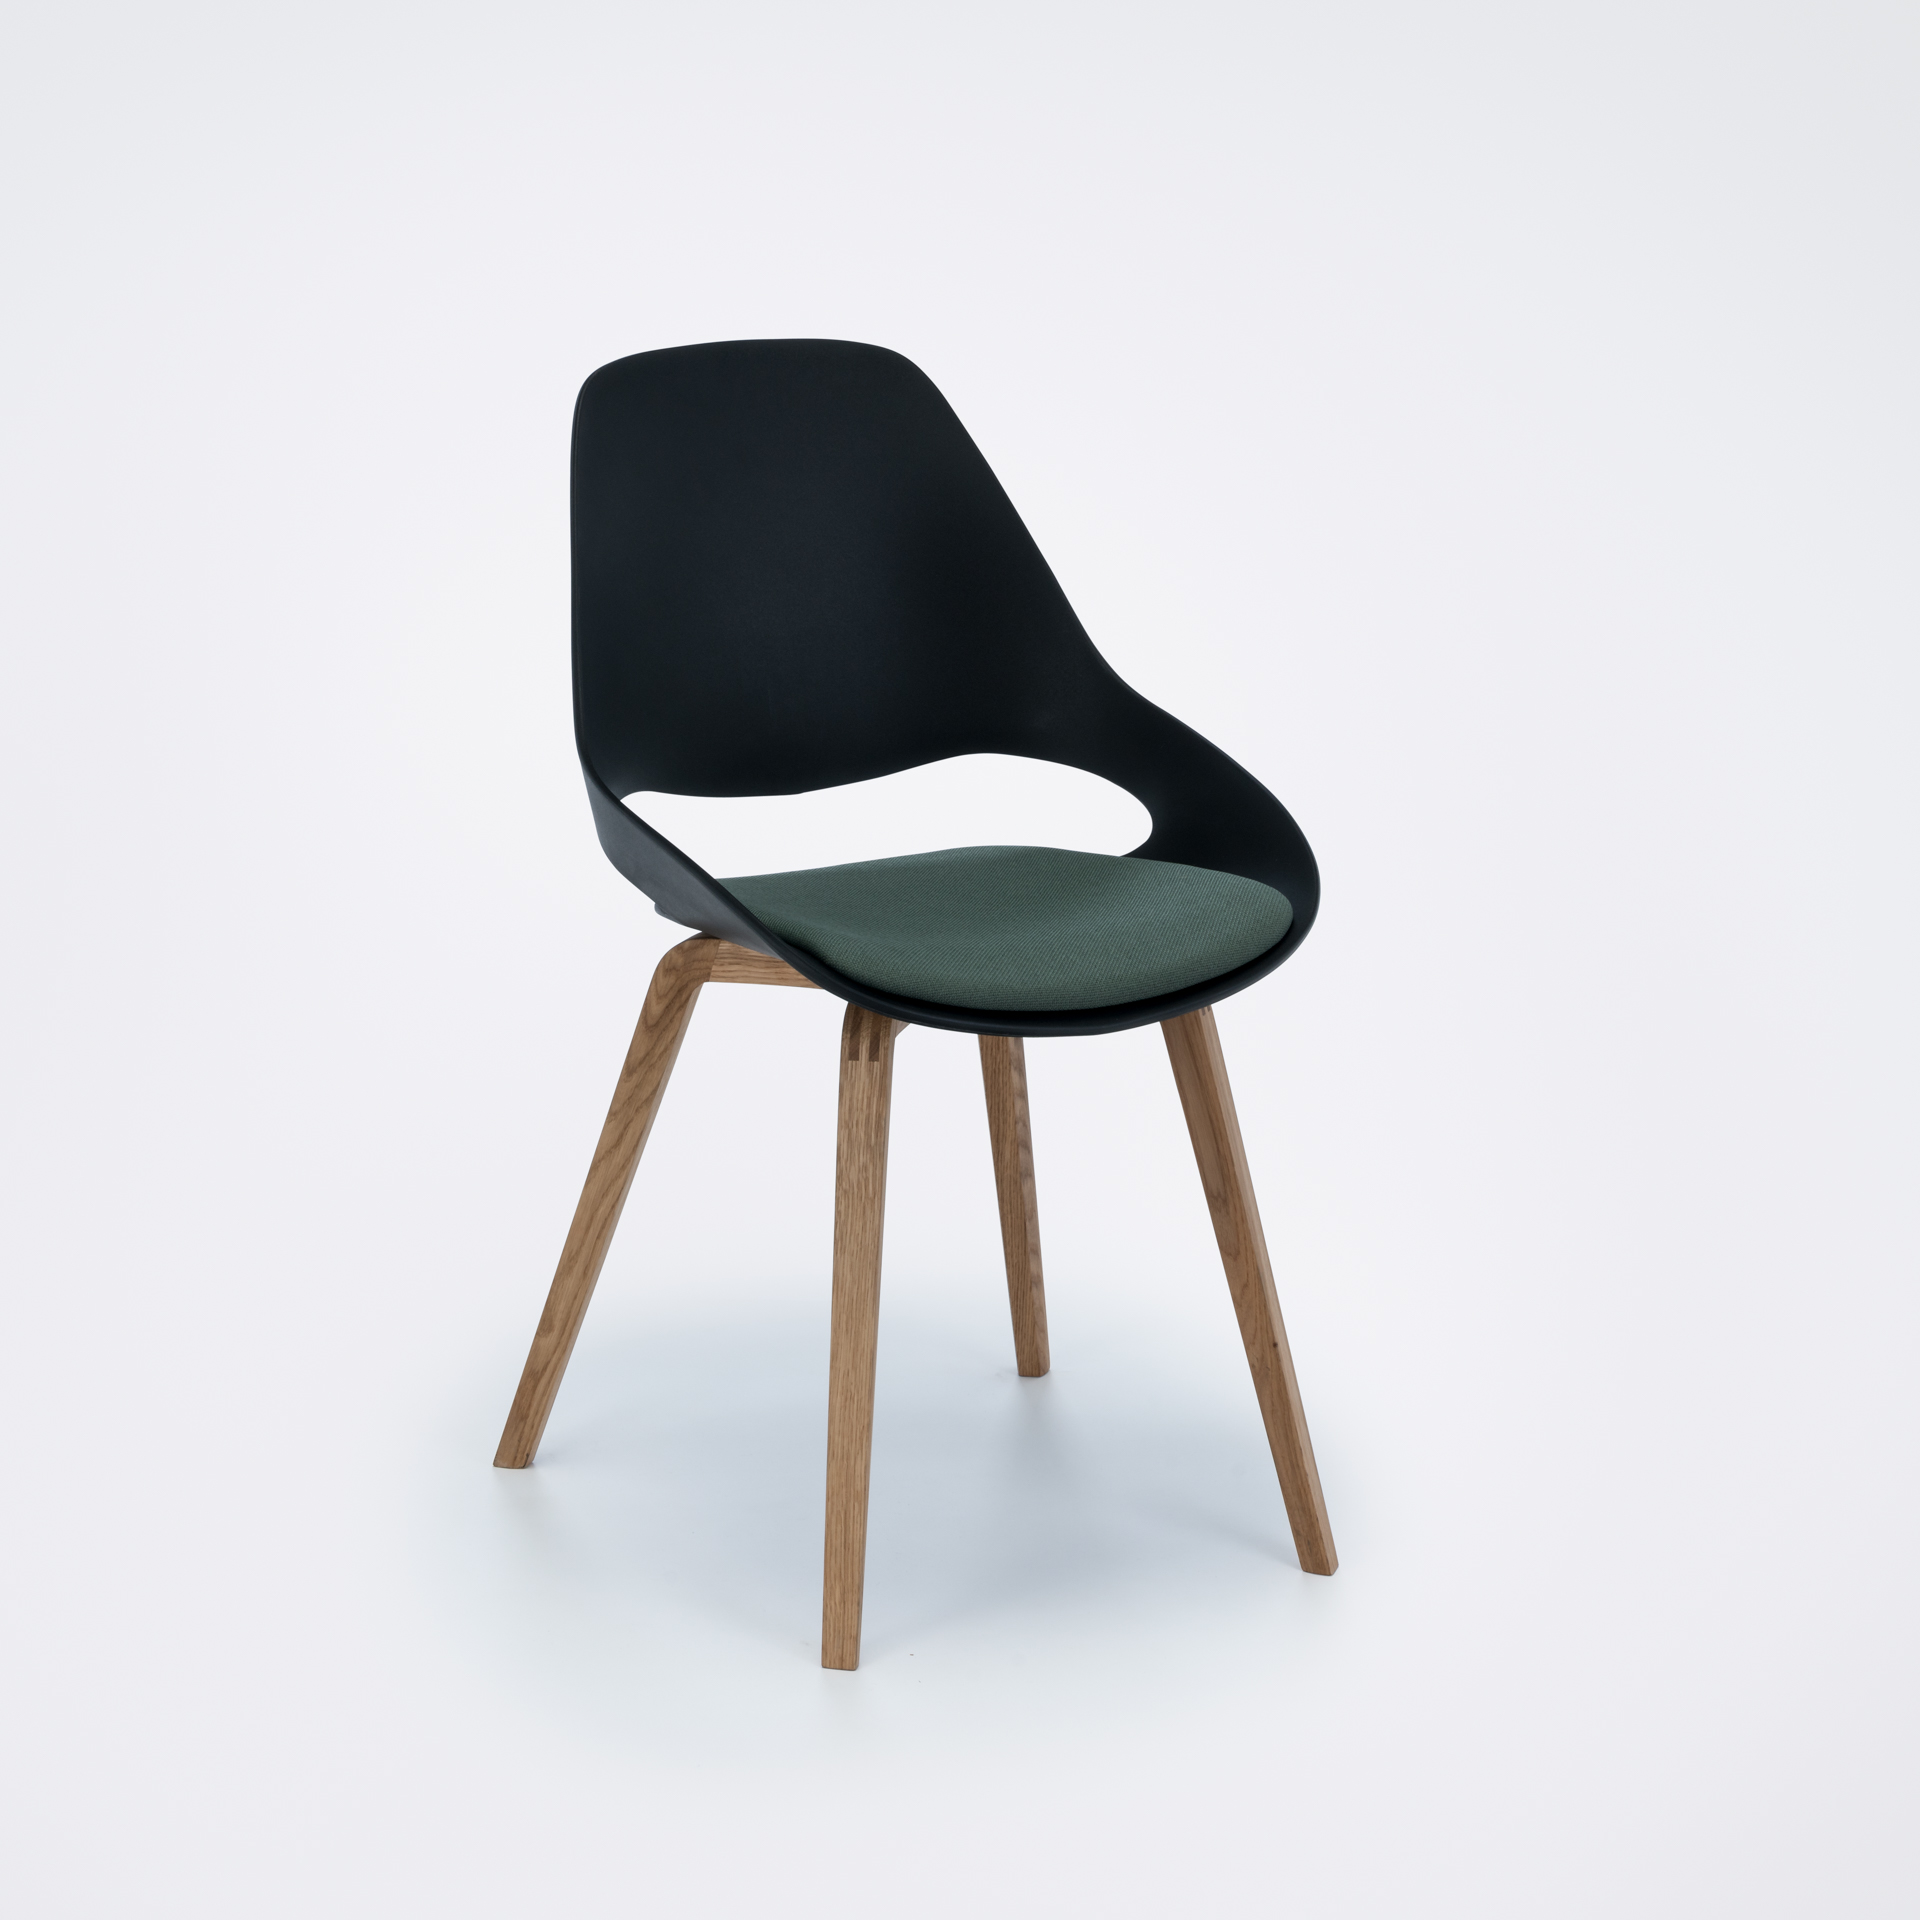 DINING CHAIR // PADDED SEAT // Black/dark olive // Oiled Oak legs